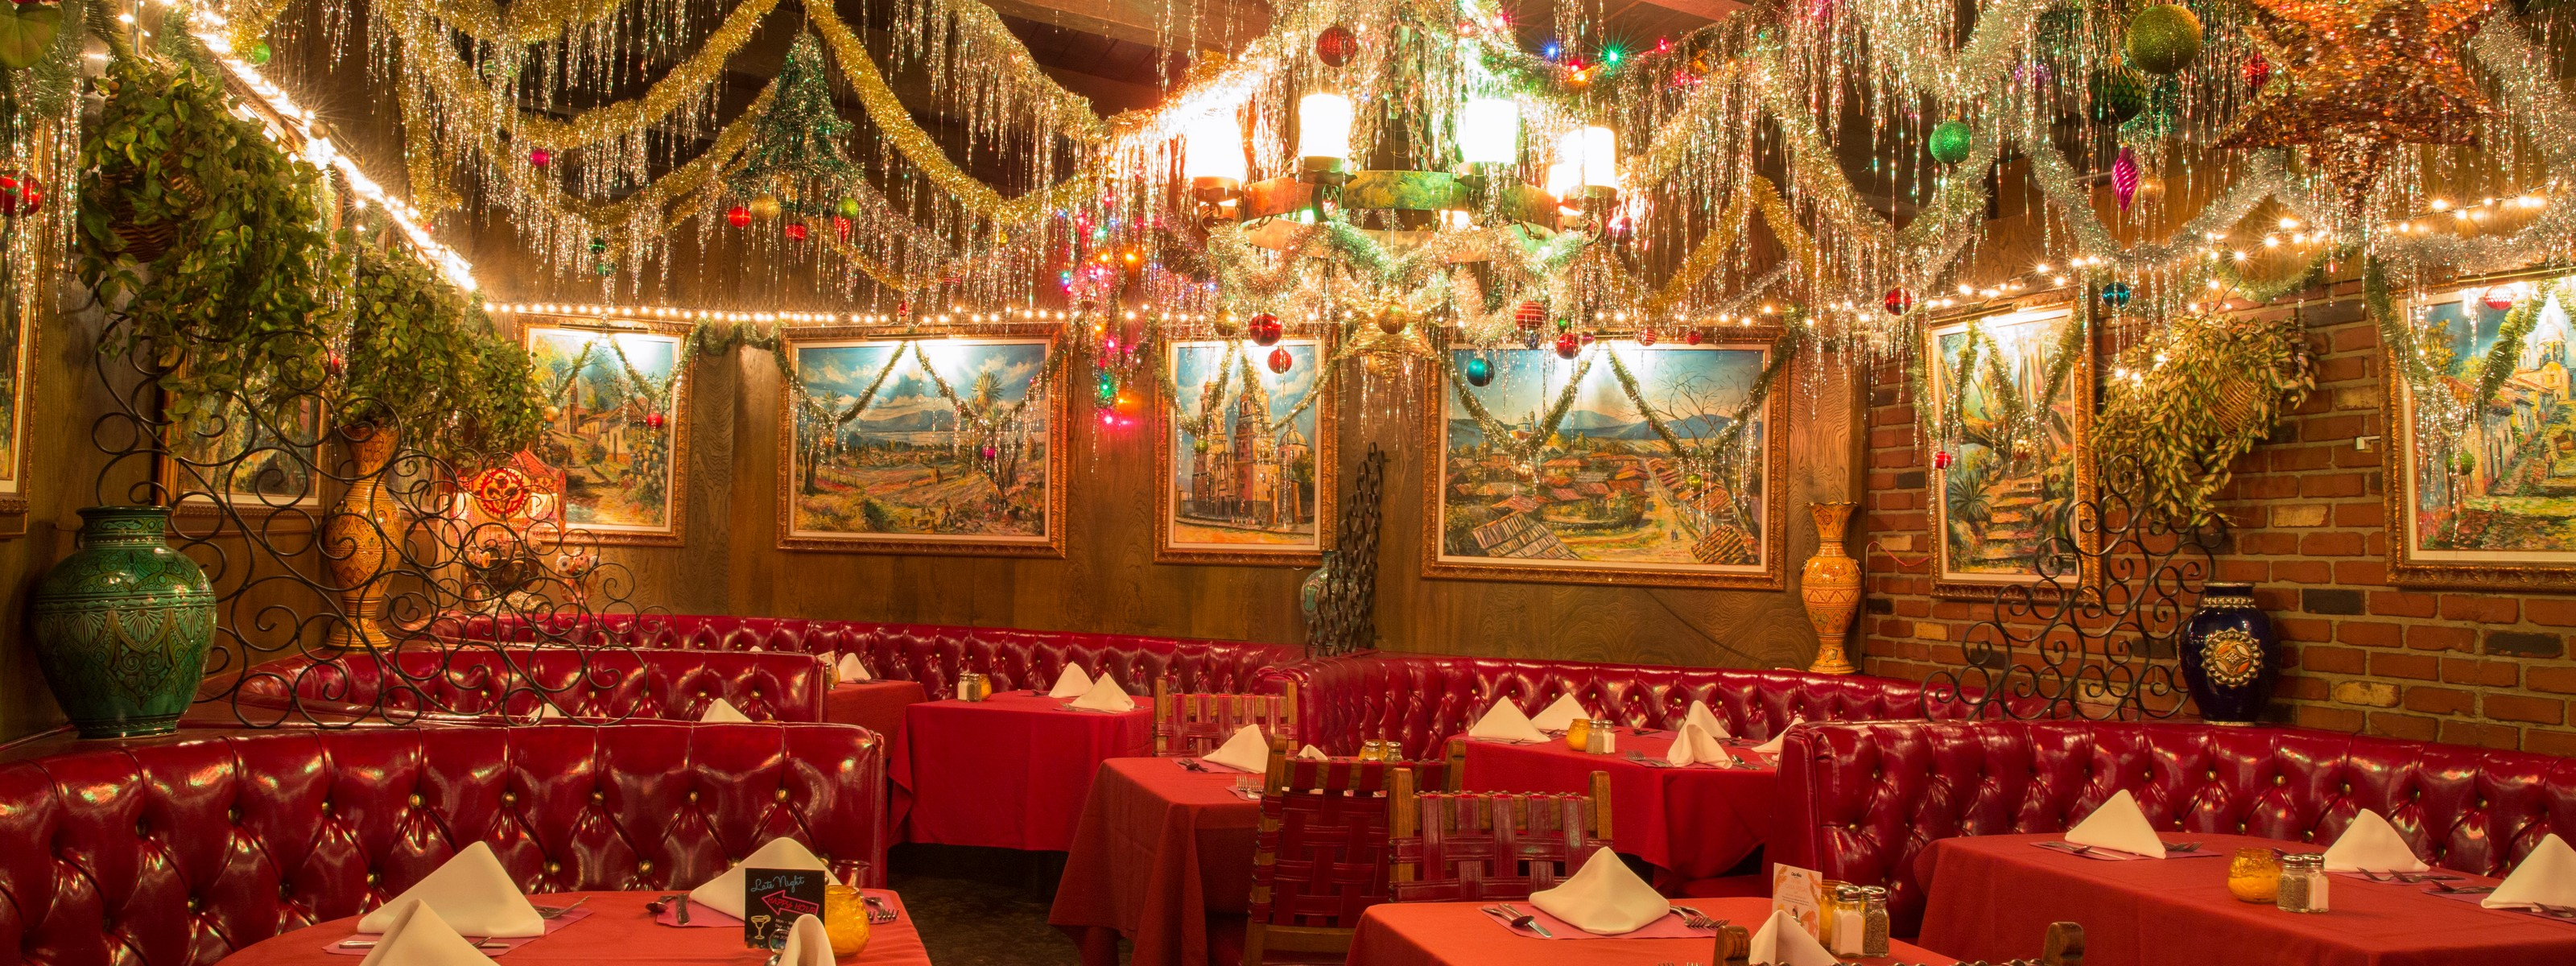 13 La Restaurants That Are Great During The Holidays Los